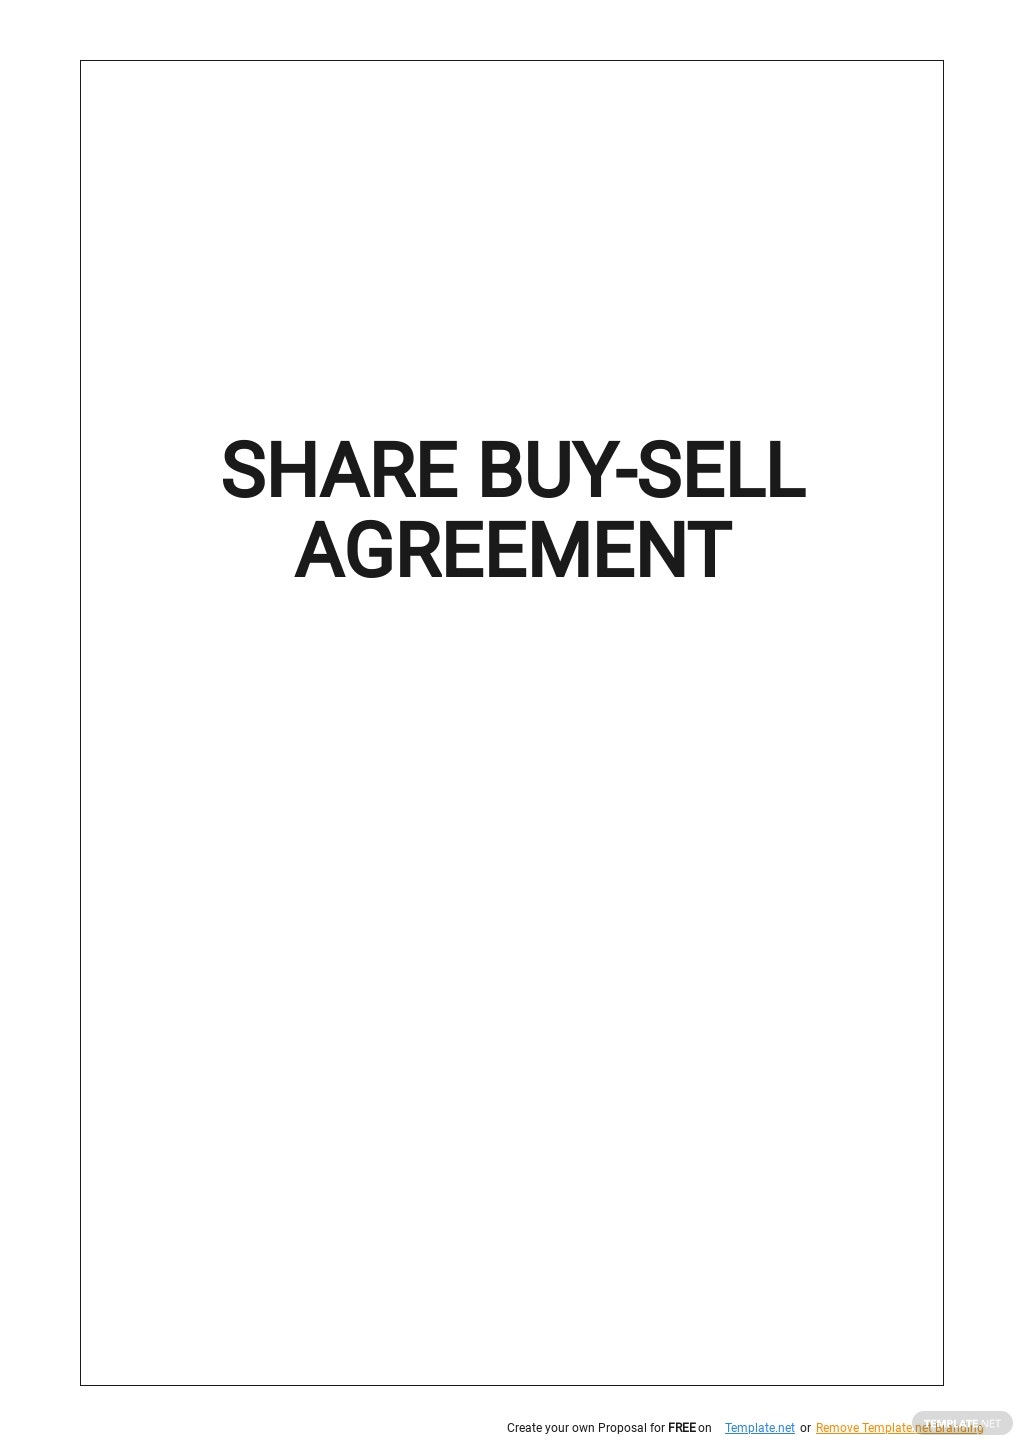 Share Buy Sell Agreement Template.jpe